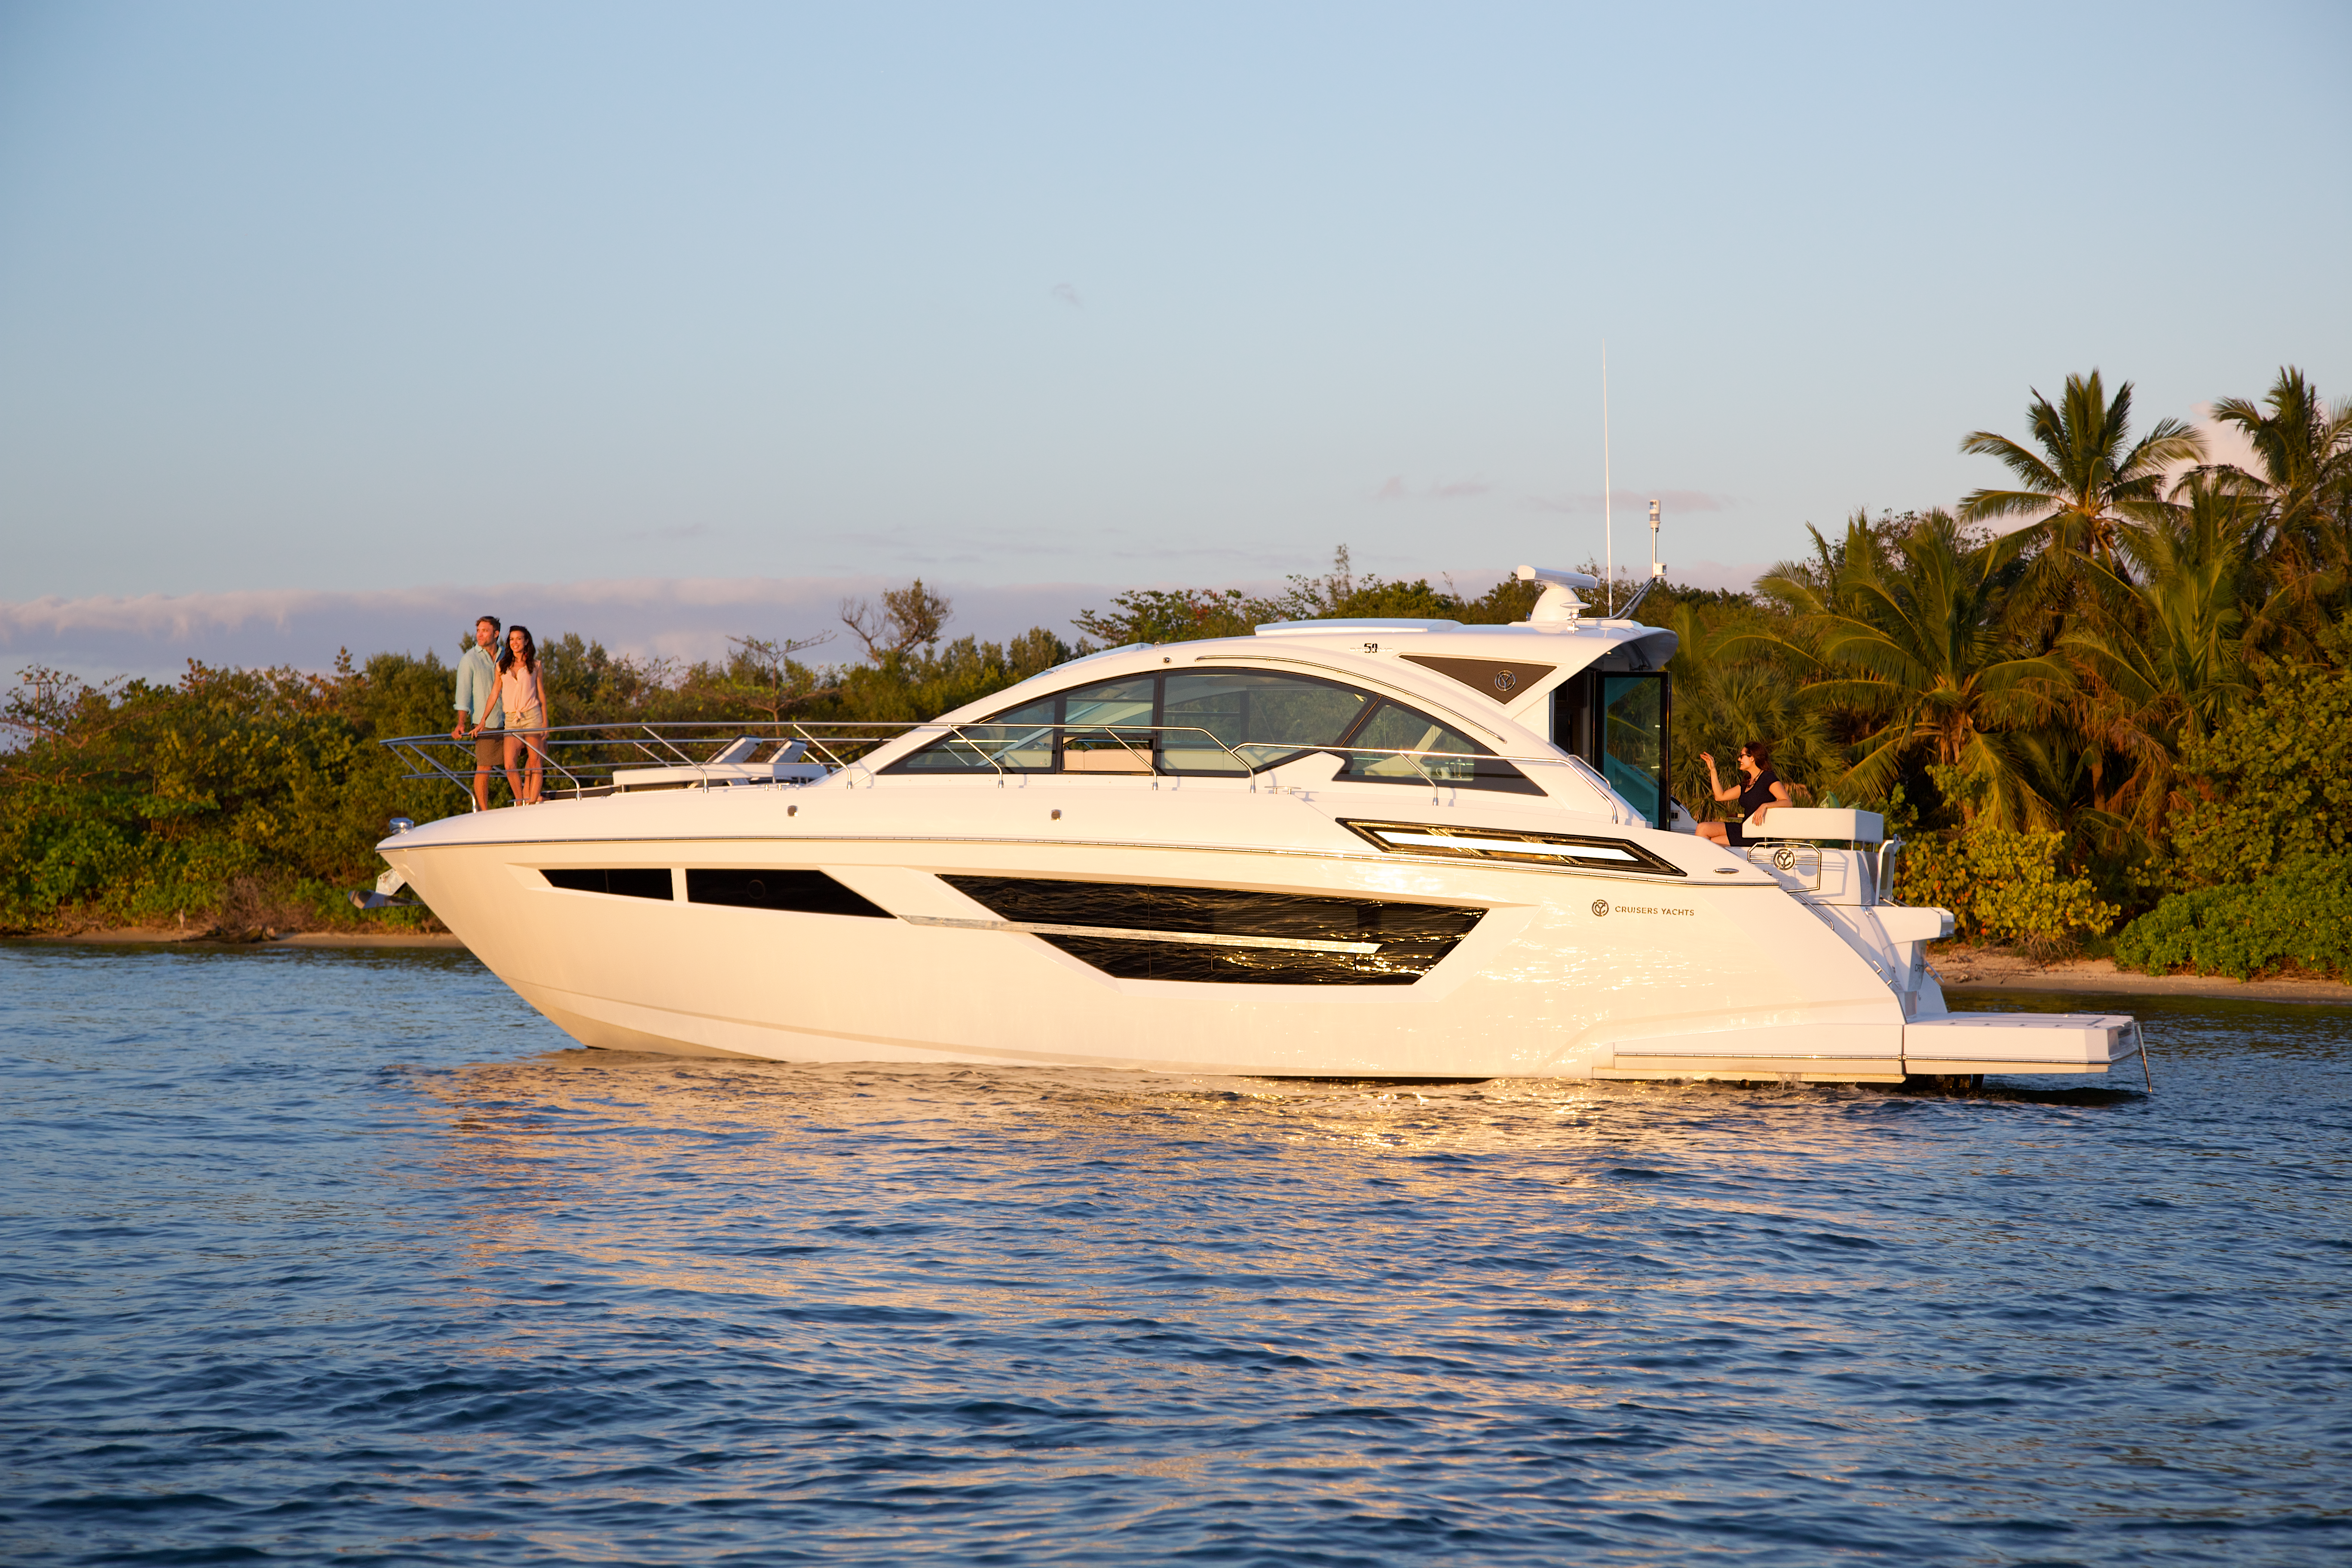 Boat Review: Cruisers 50 Cantius - SHORE Magazine - Boating